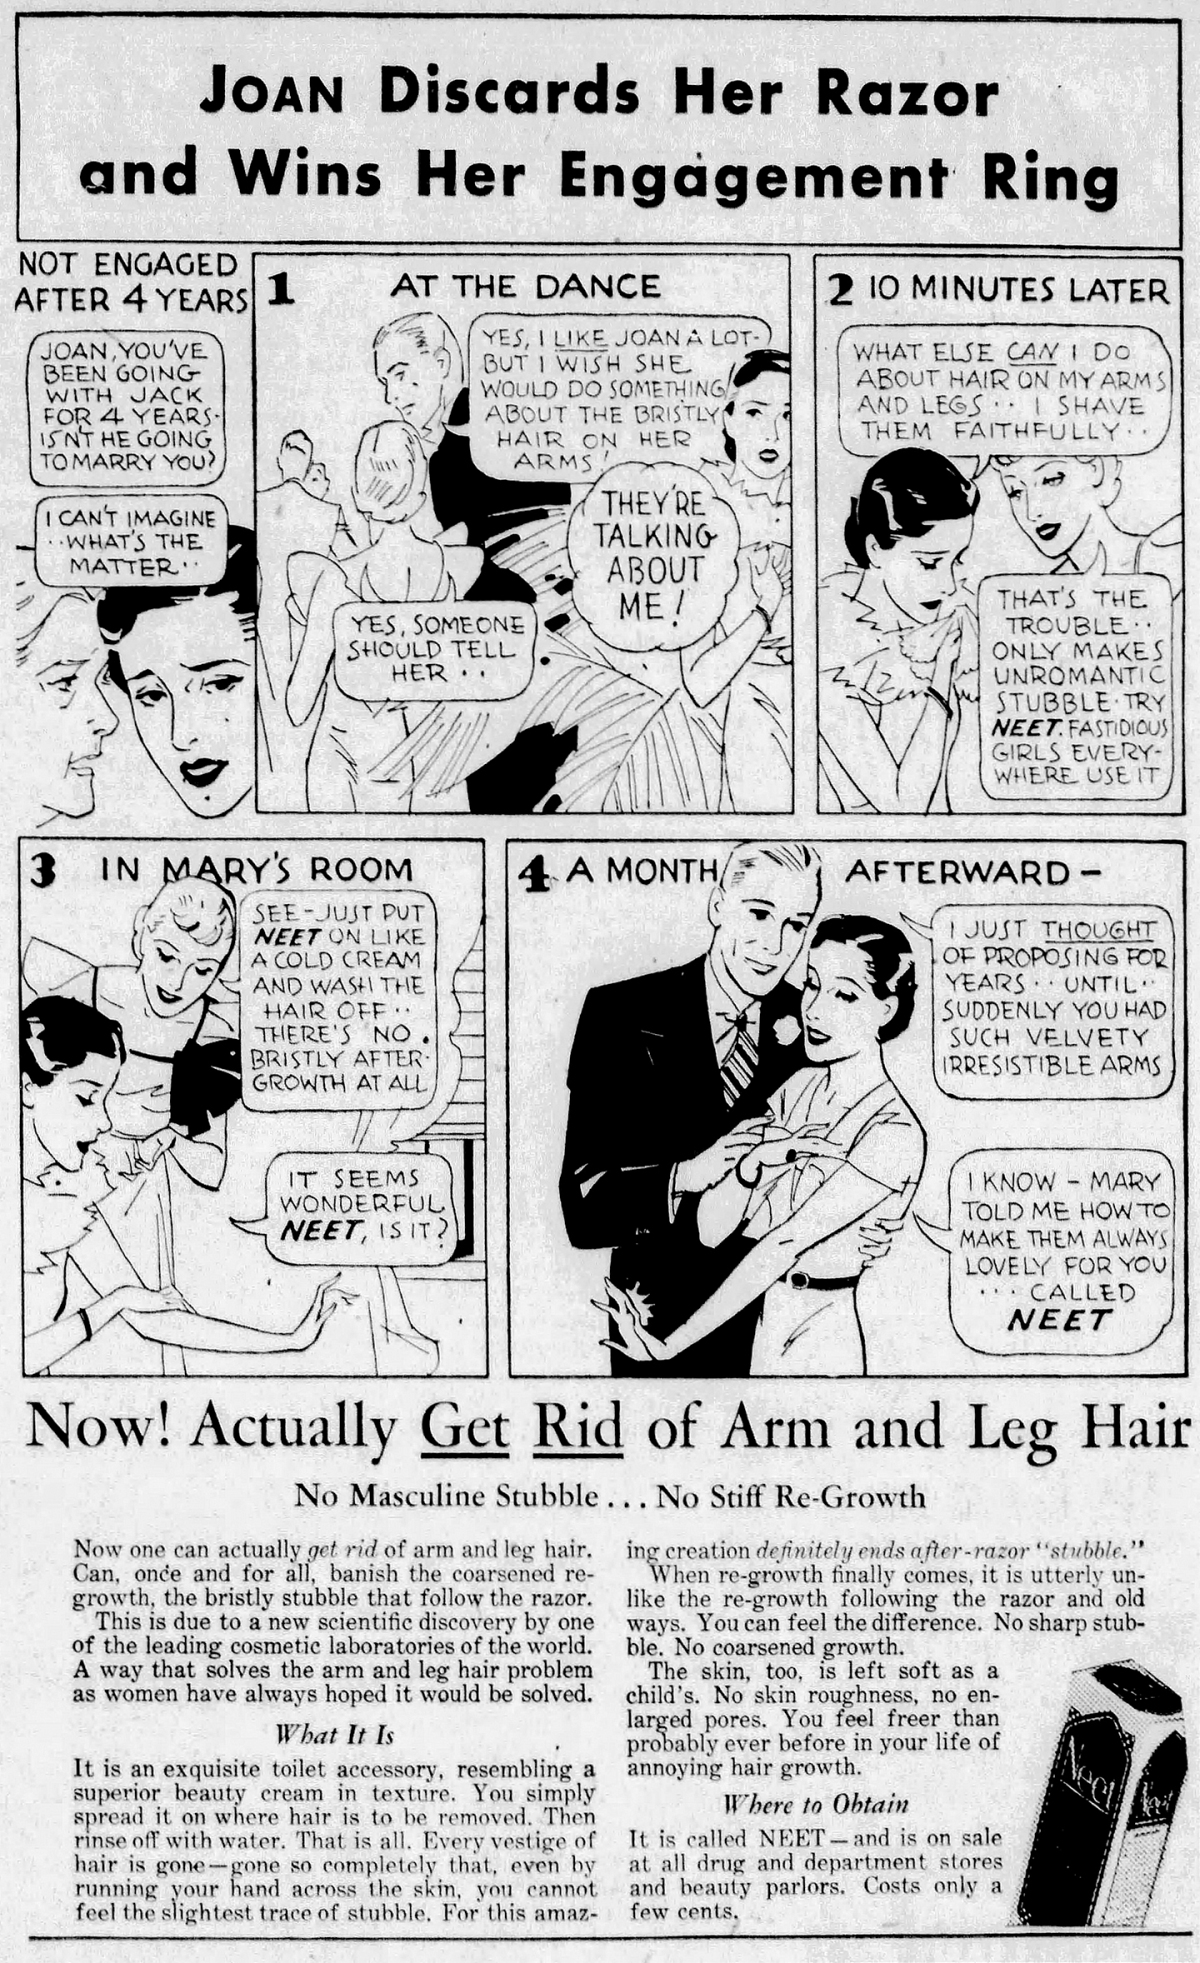 Old Ad of the Week: Velvety Irresistible Arms